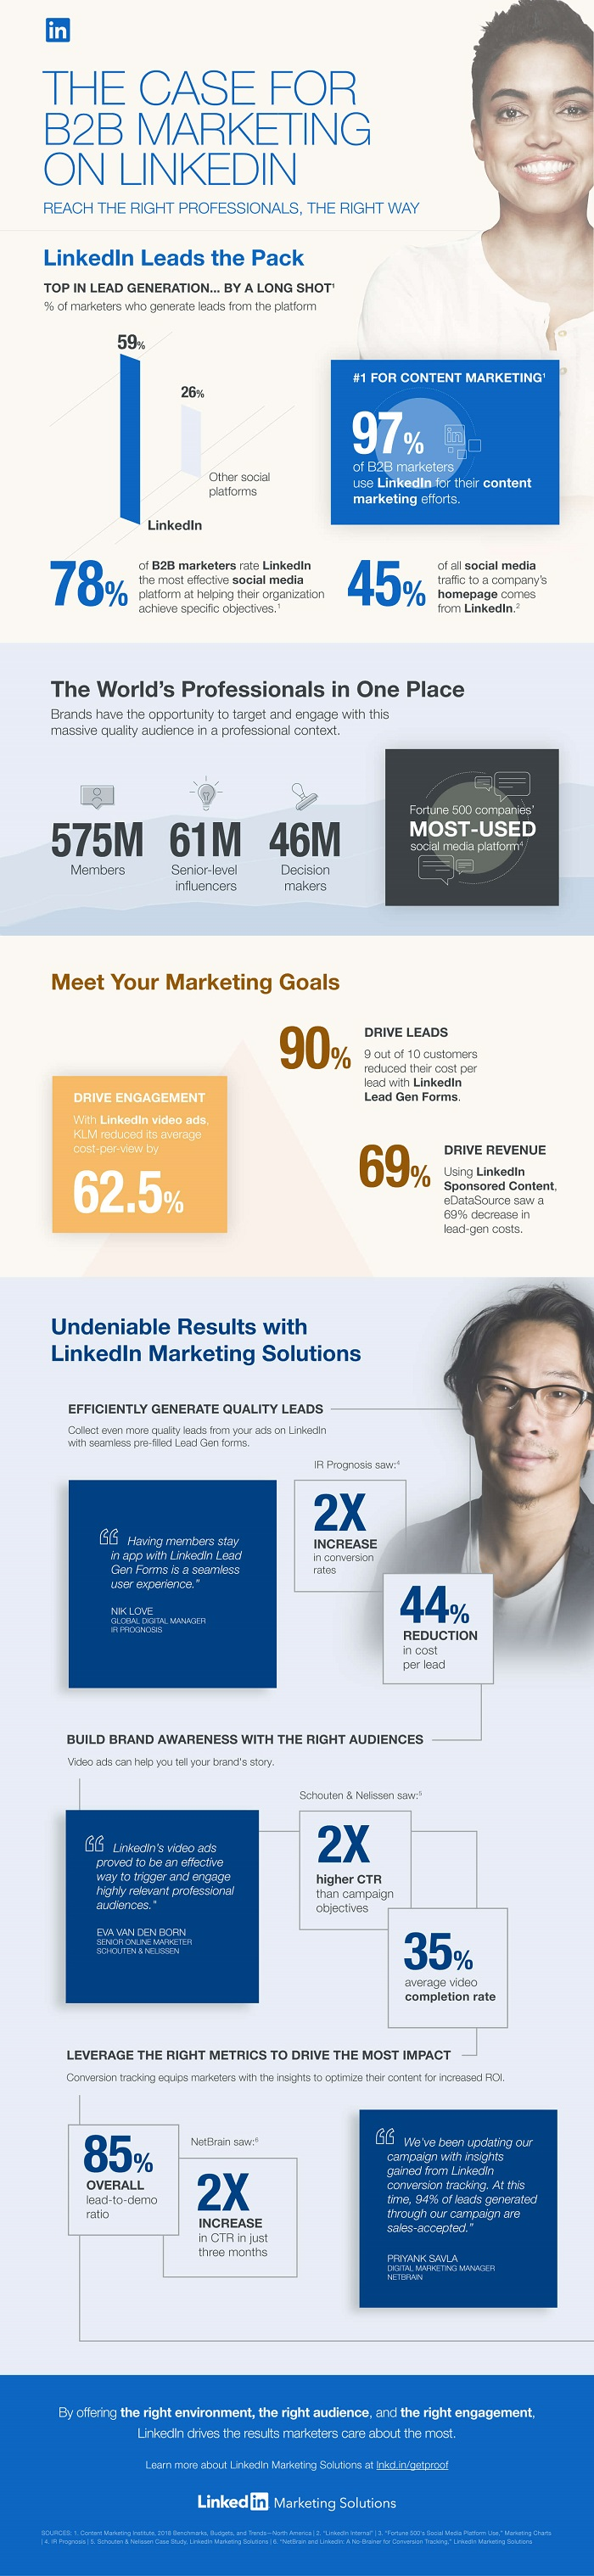 The case for B2B marketing on LinkedIn infographic